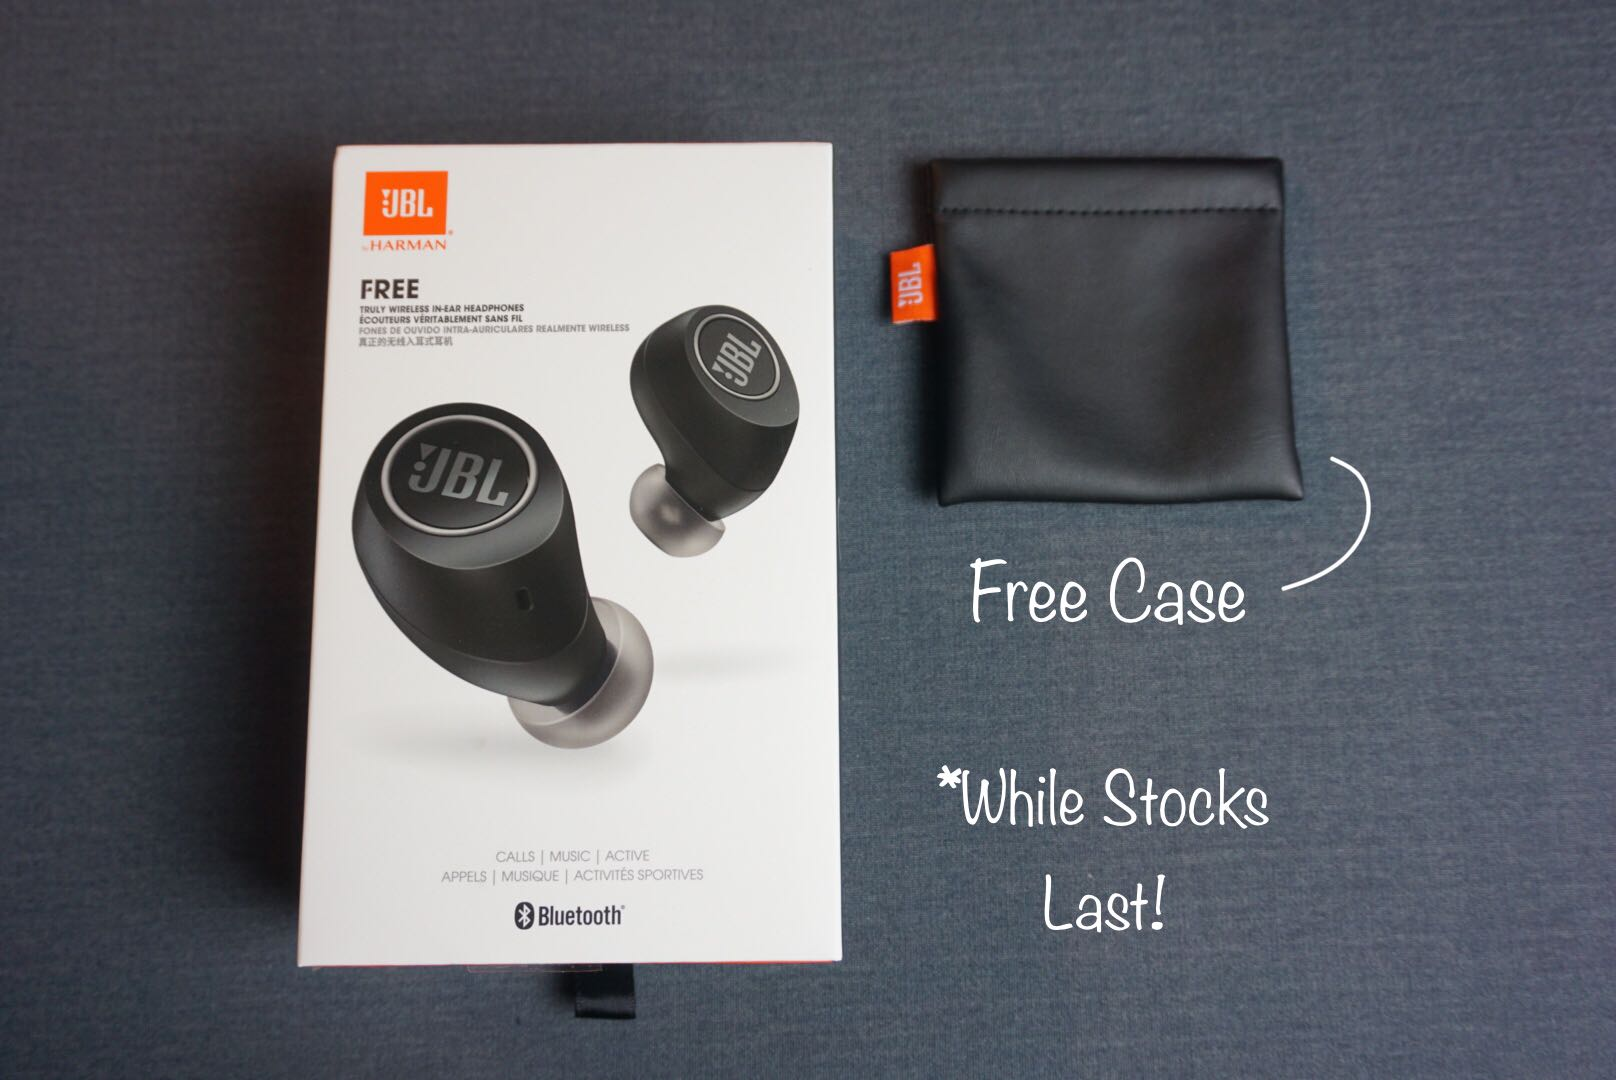 JBL Free True Wireless Sports Earbuds (Includes Free Soft